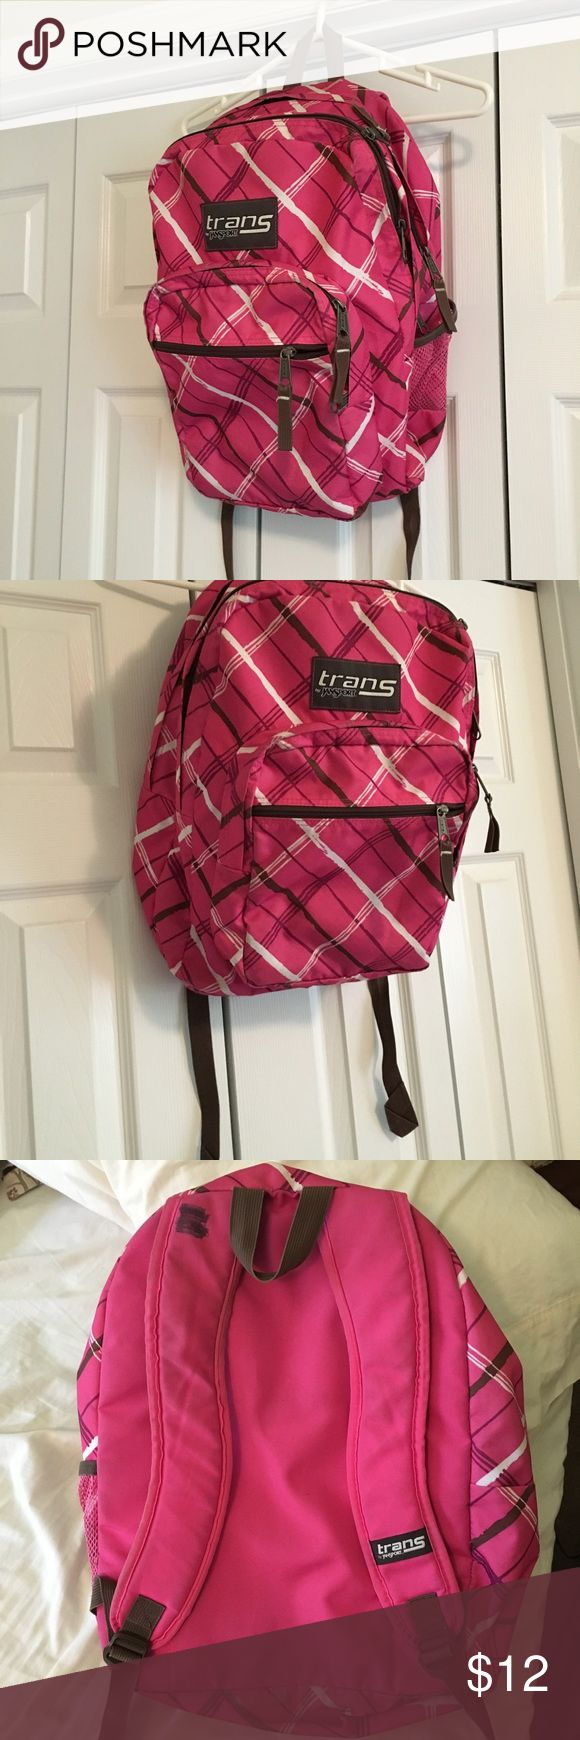 Pink Jansport Bookbag This bookbag has been pre-loved but has no holes/damage/stains besides the name that has been marked out! This print is no longer sold in stores or websites 💕 a GREAT bookbag that can hold just about anything Jansport Bags Backpacks